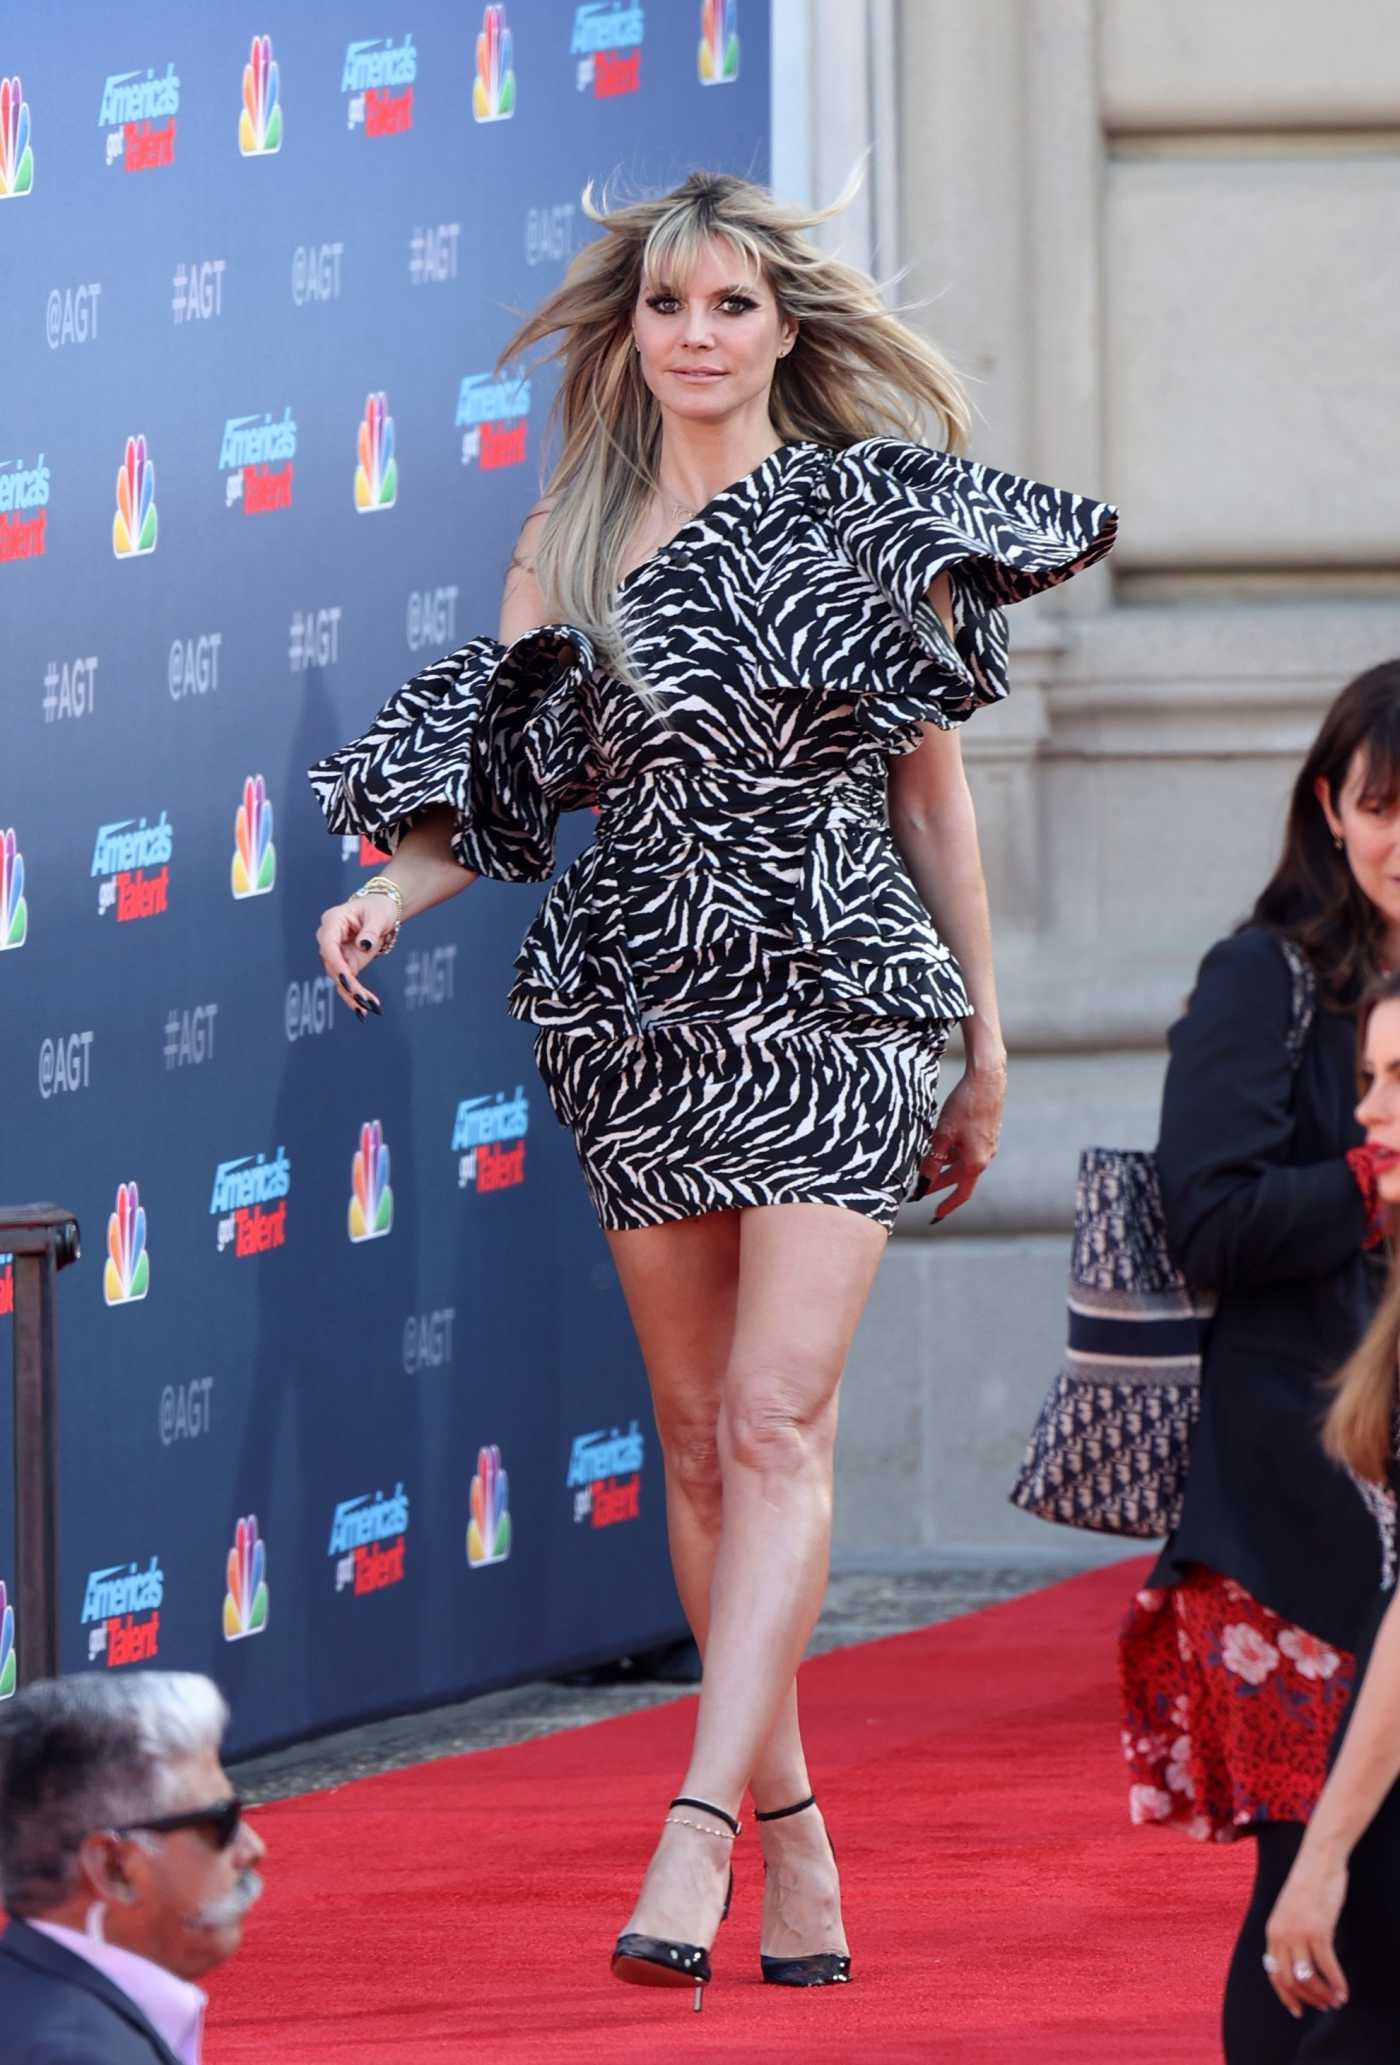 Heidi Klum Attends the America's Got Talent Season 15 Kickoff at Pasadena Civic Auditorium in Pasadena 03/04/2020